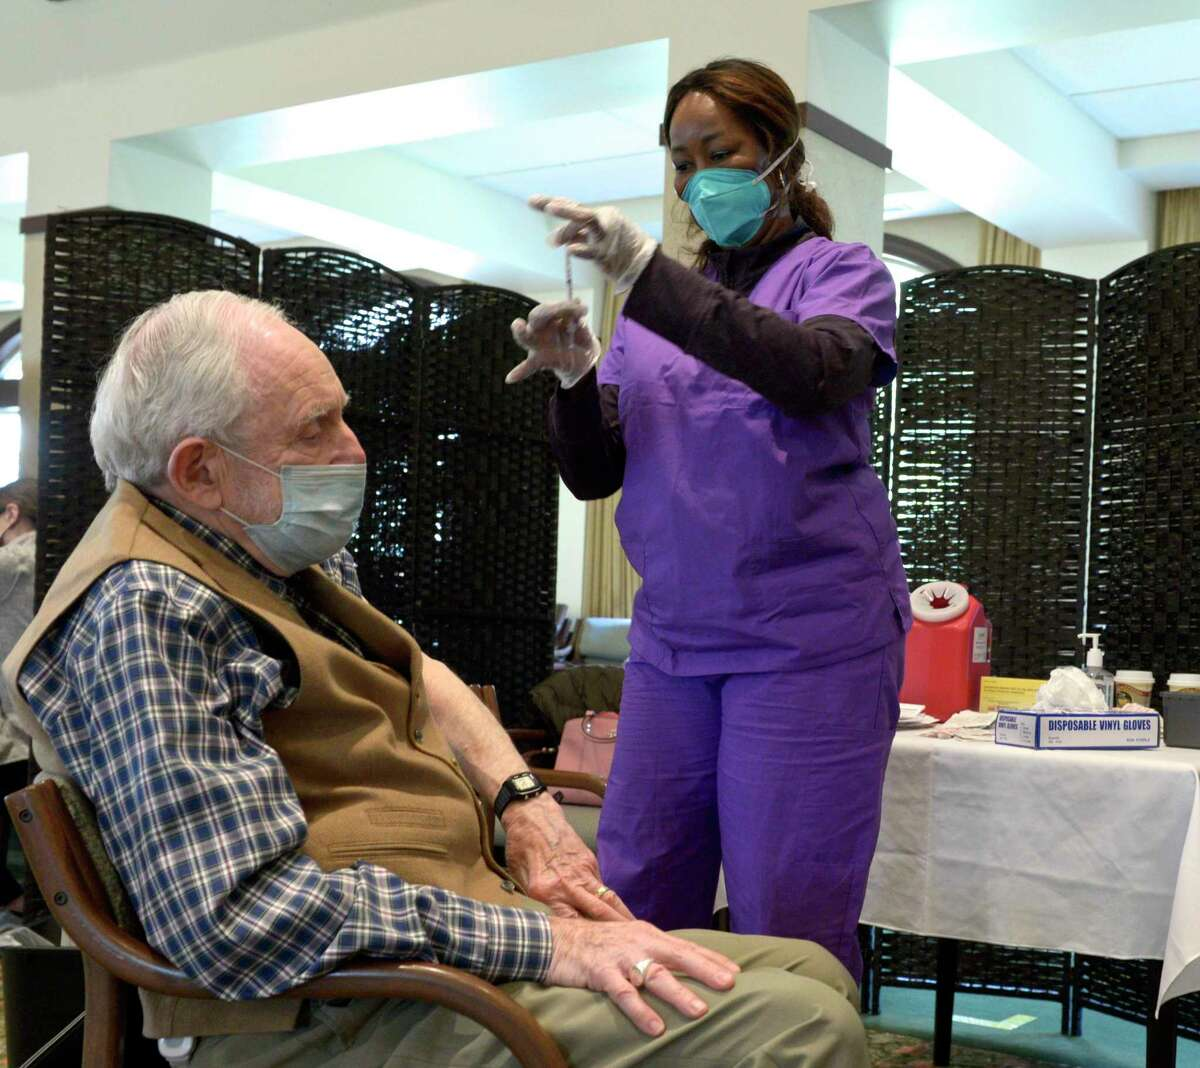 Arthur Turner MD, a resident of Meadow Ridge senior living, receives his covid-19 vaccination from Kerrine McCallum RN. Friday, January 22, 2021, in Redding, Conn.